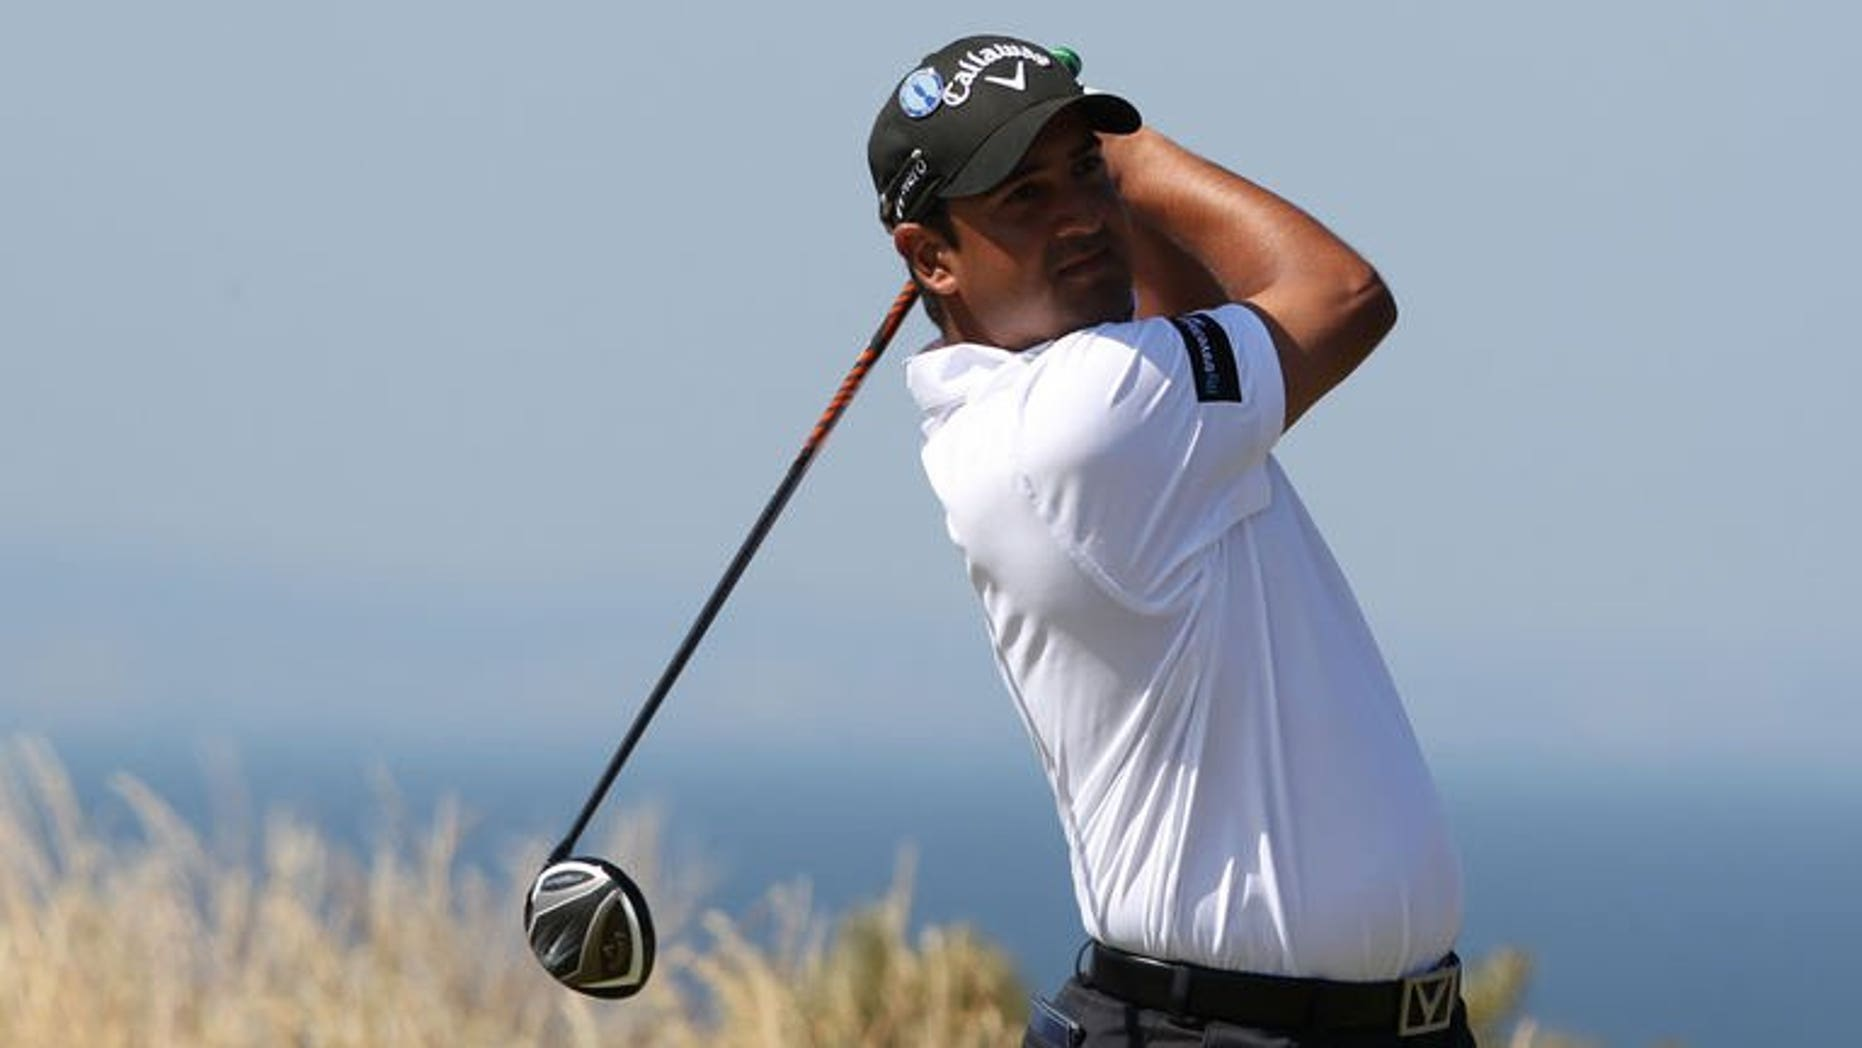 India's Shiv Kapur tees off on the fifth during the second round of the 2013 British Open Golf Championship at Muirfield golf course at Gullane in Scotland on July 19, 2013. Kapur of India will aim to recreate his opening day magic after shooting a six-over-par 77 at the halfway stage of the British Open on Friday.